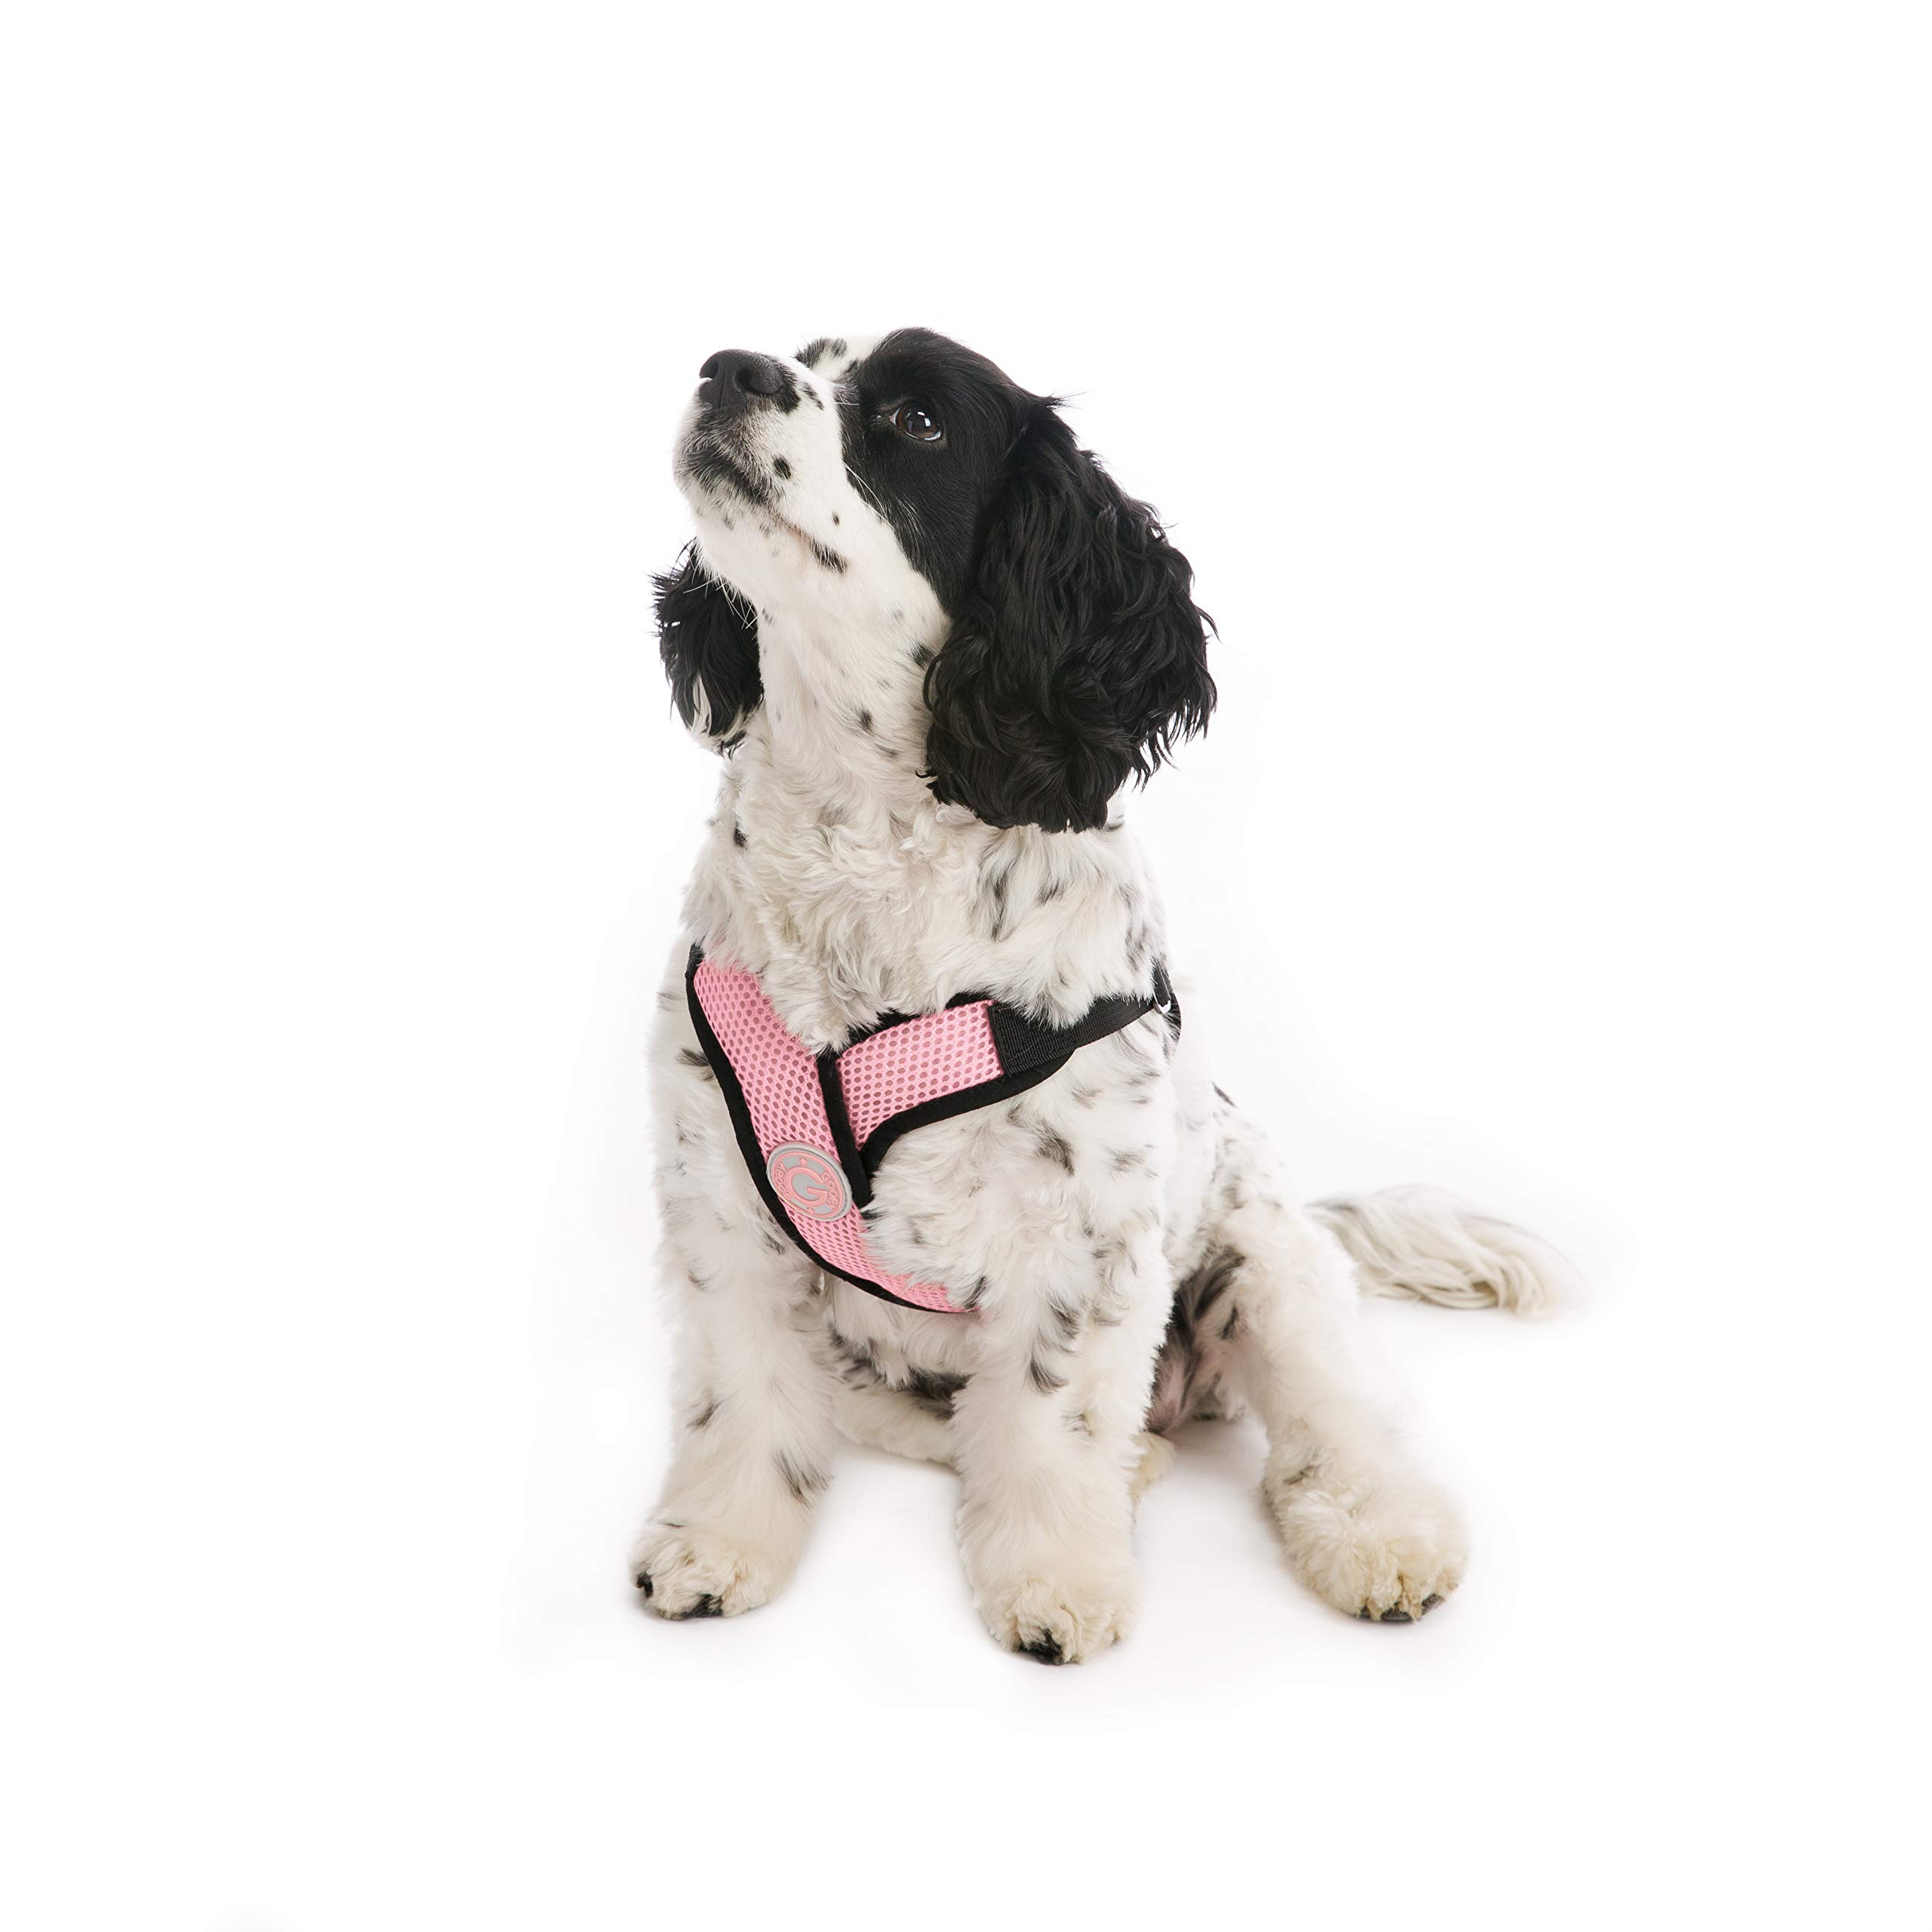 Gooby - Comfort X Step-in Harness, Choke Free Small Dog Harness with Micro Suede Trimming and Patented X Frame, Pink, X-Large by Gooby